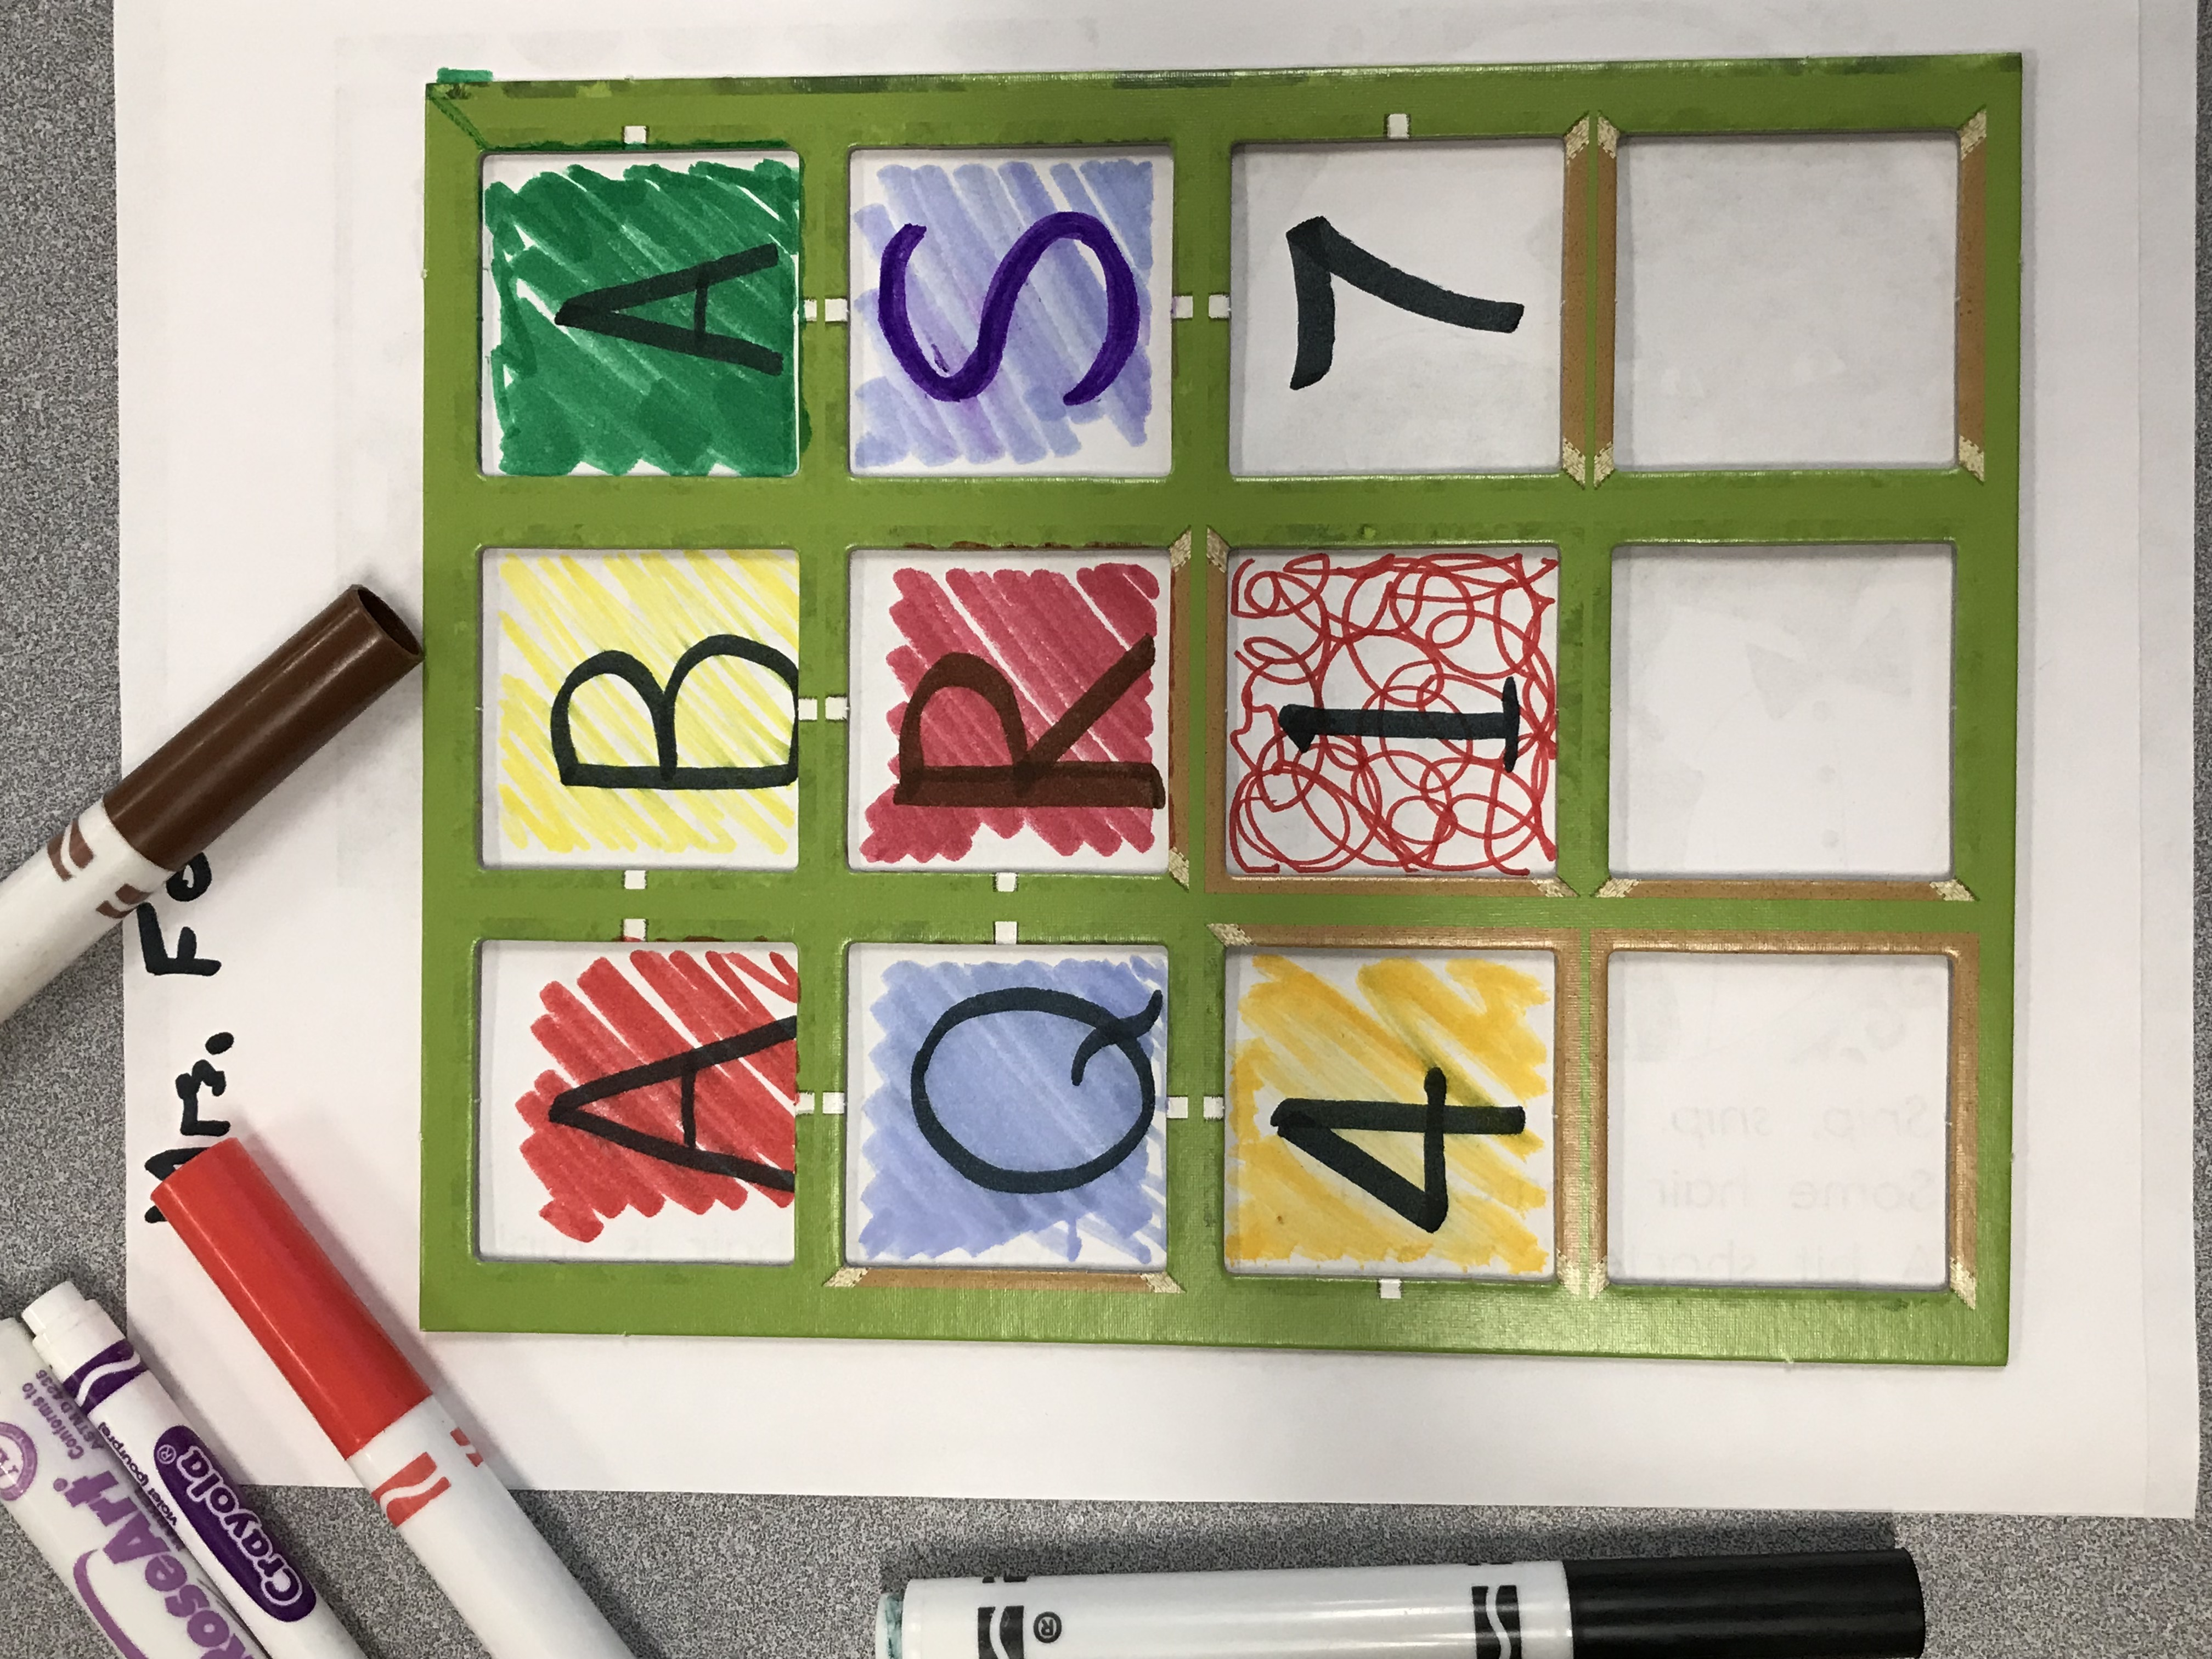 Square template with colorful letters and numbers